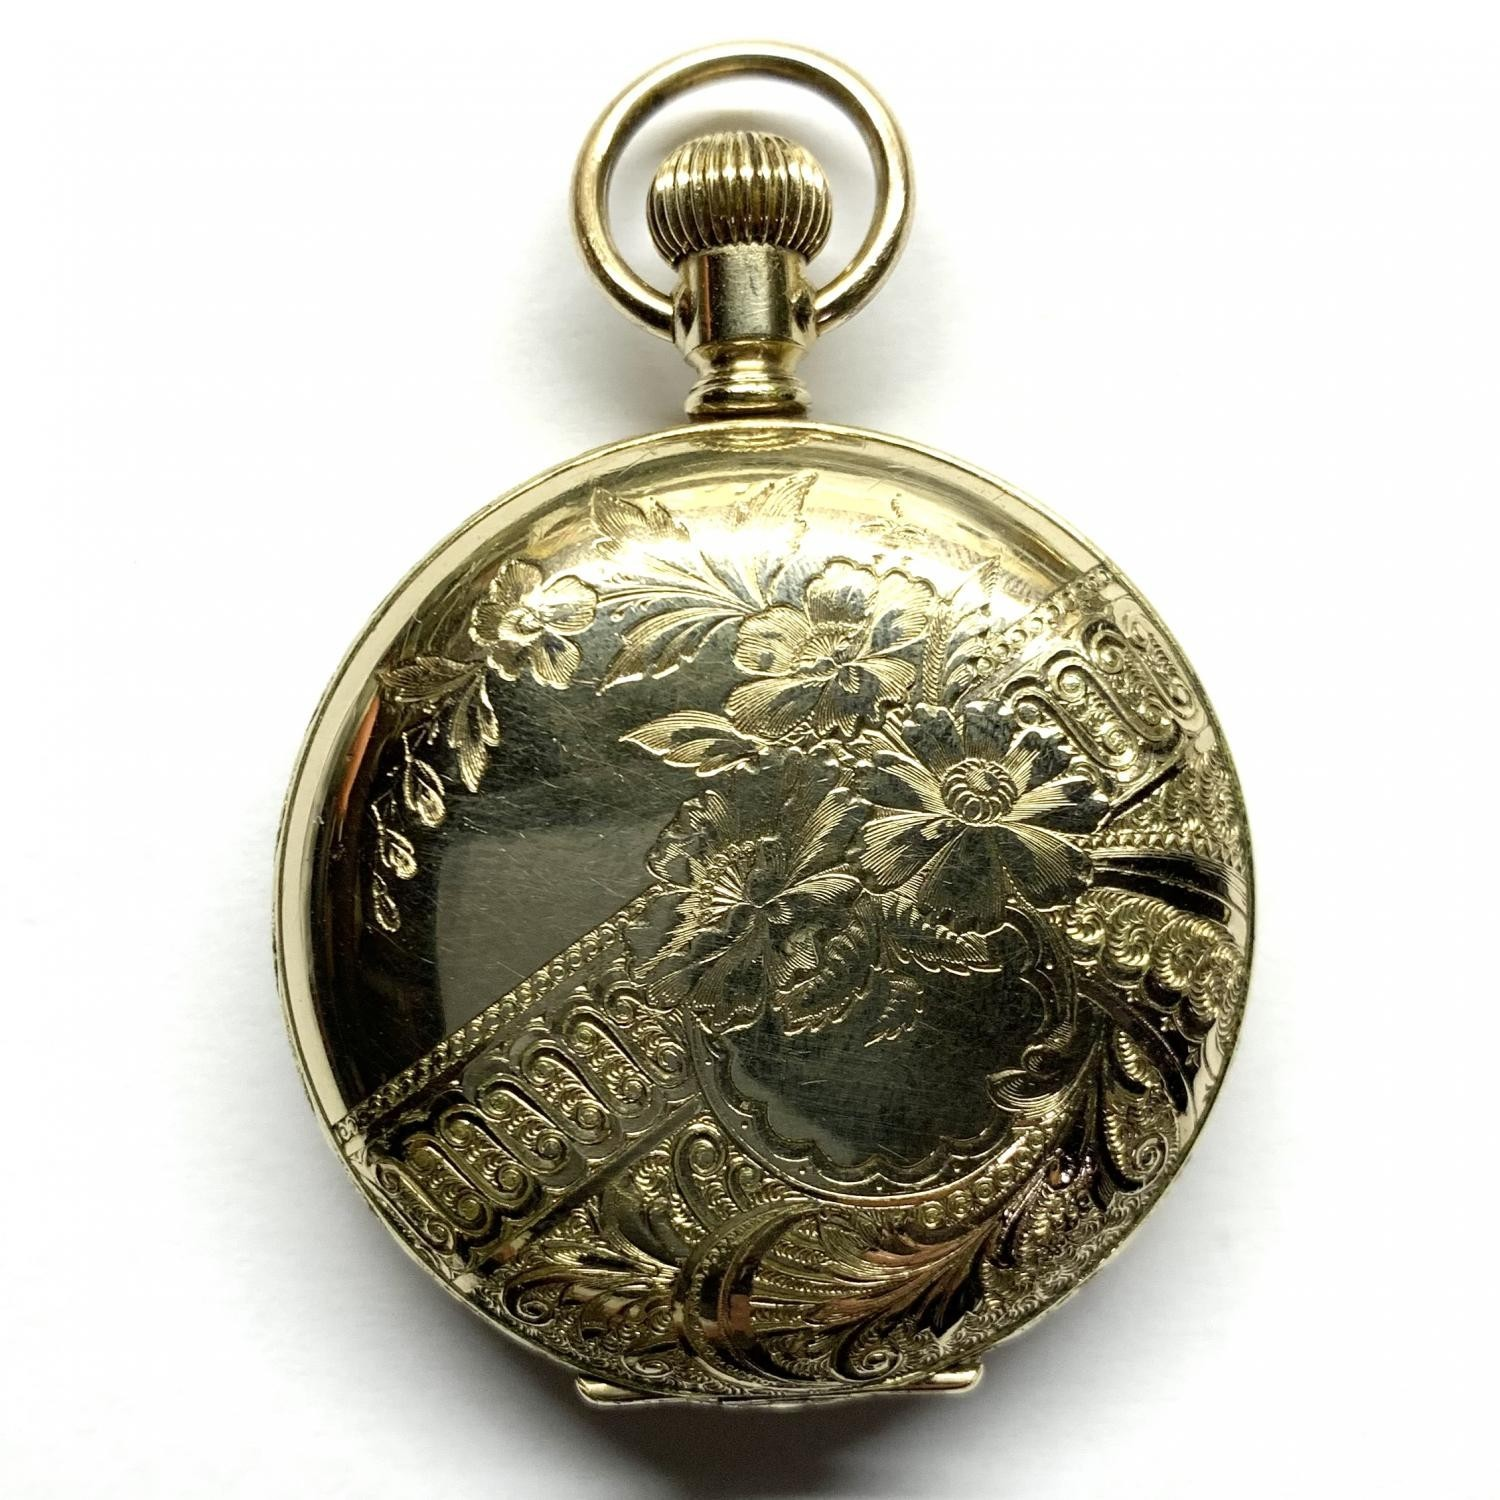 Image of Columbus Watch Co. 22 #348870 Case